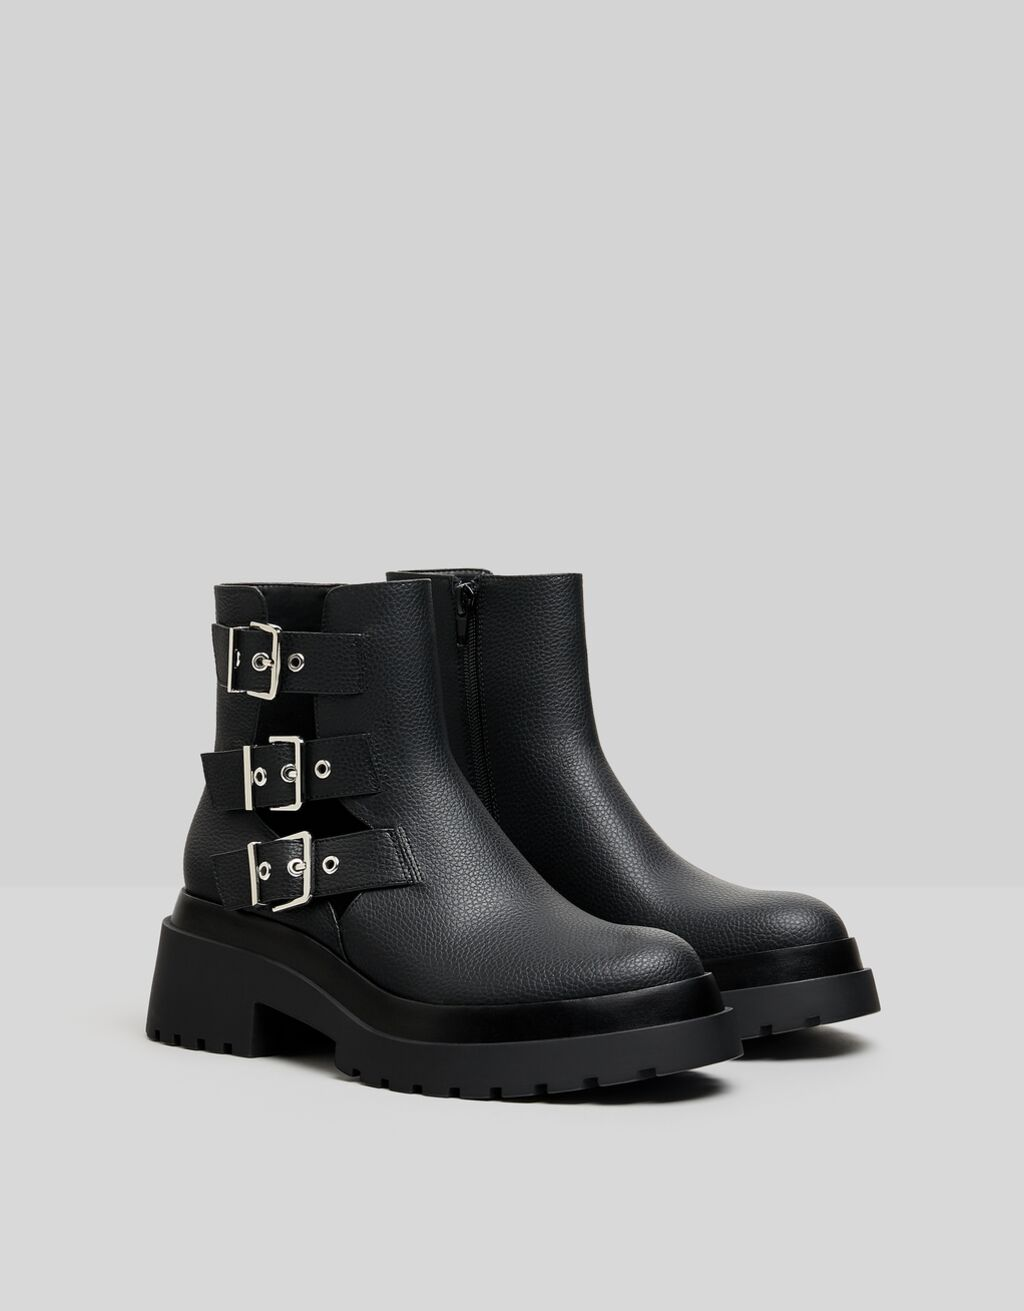 Flat ankle boots featuring cut-out detail with buckles